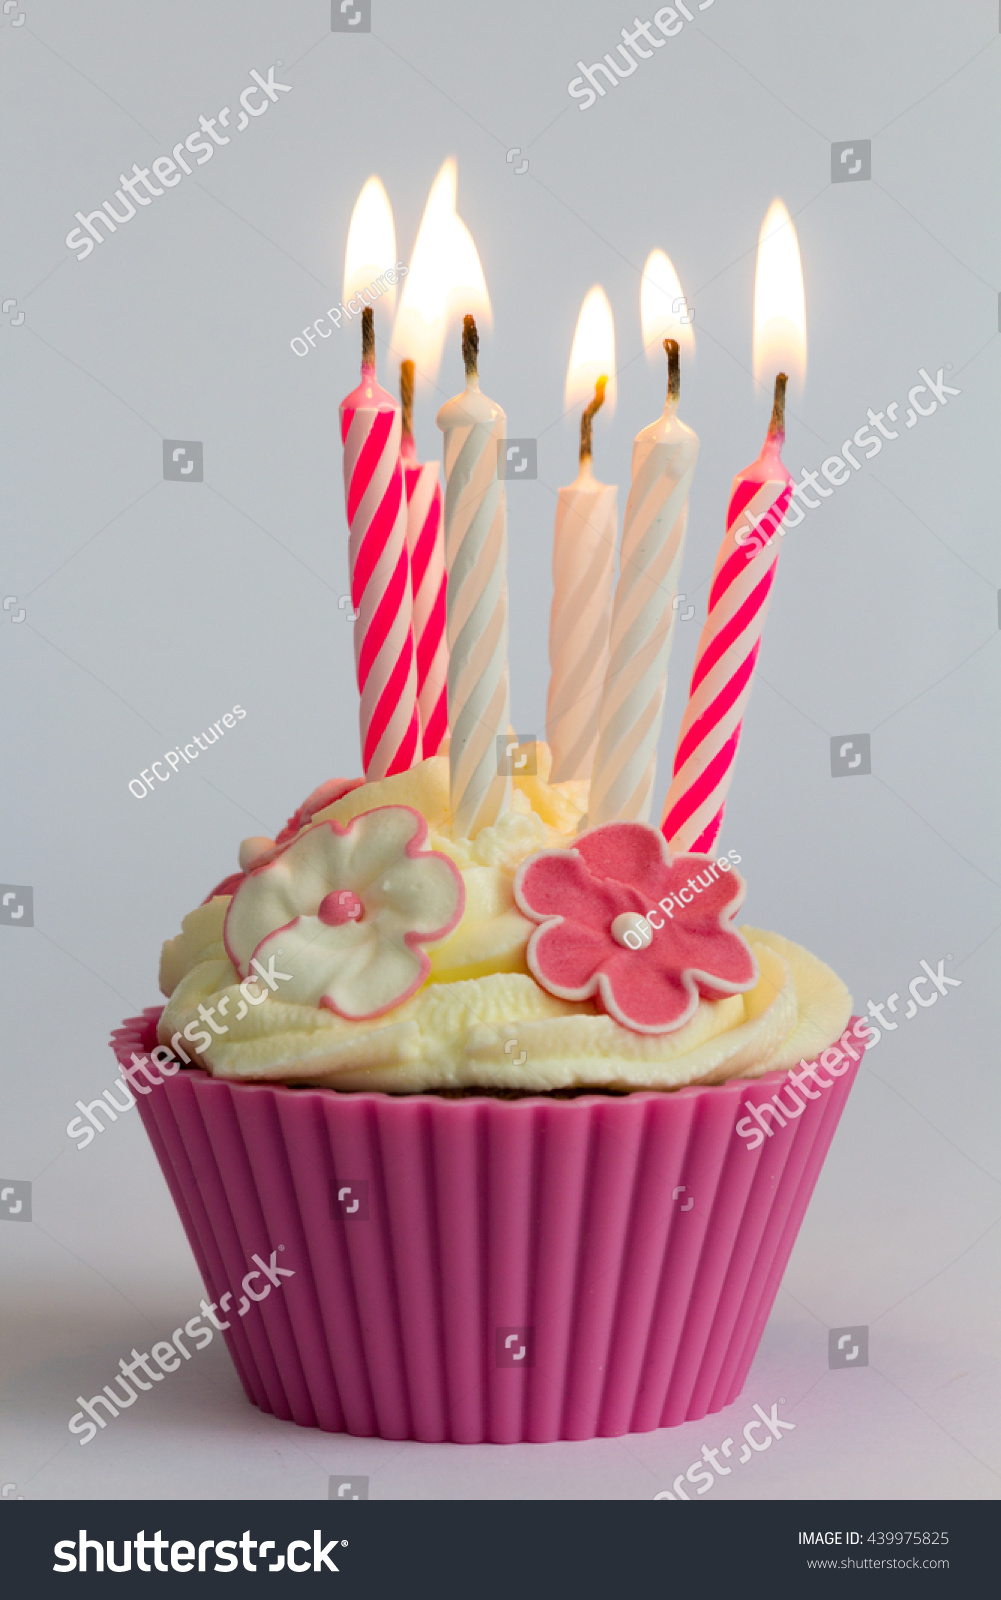 A Party Cupcake With Pink Candle And Pink Background Ez Canvas